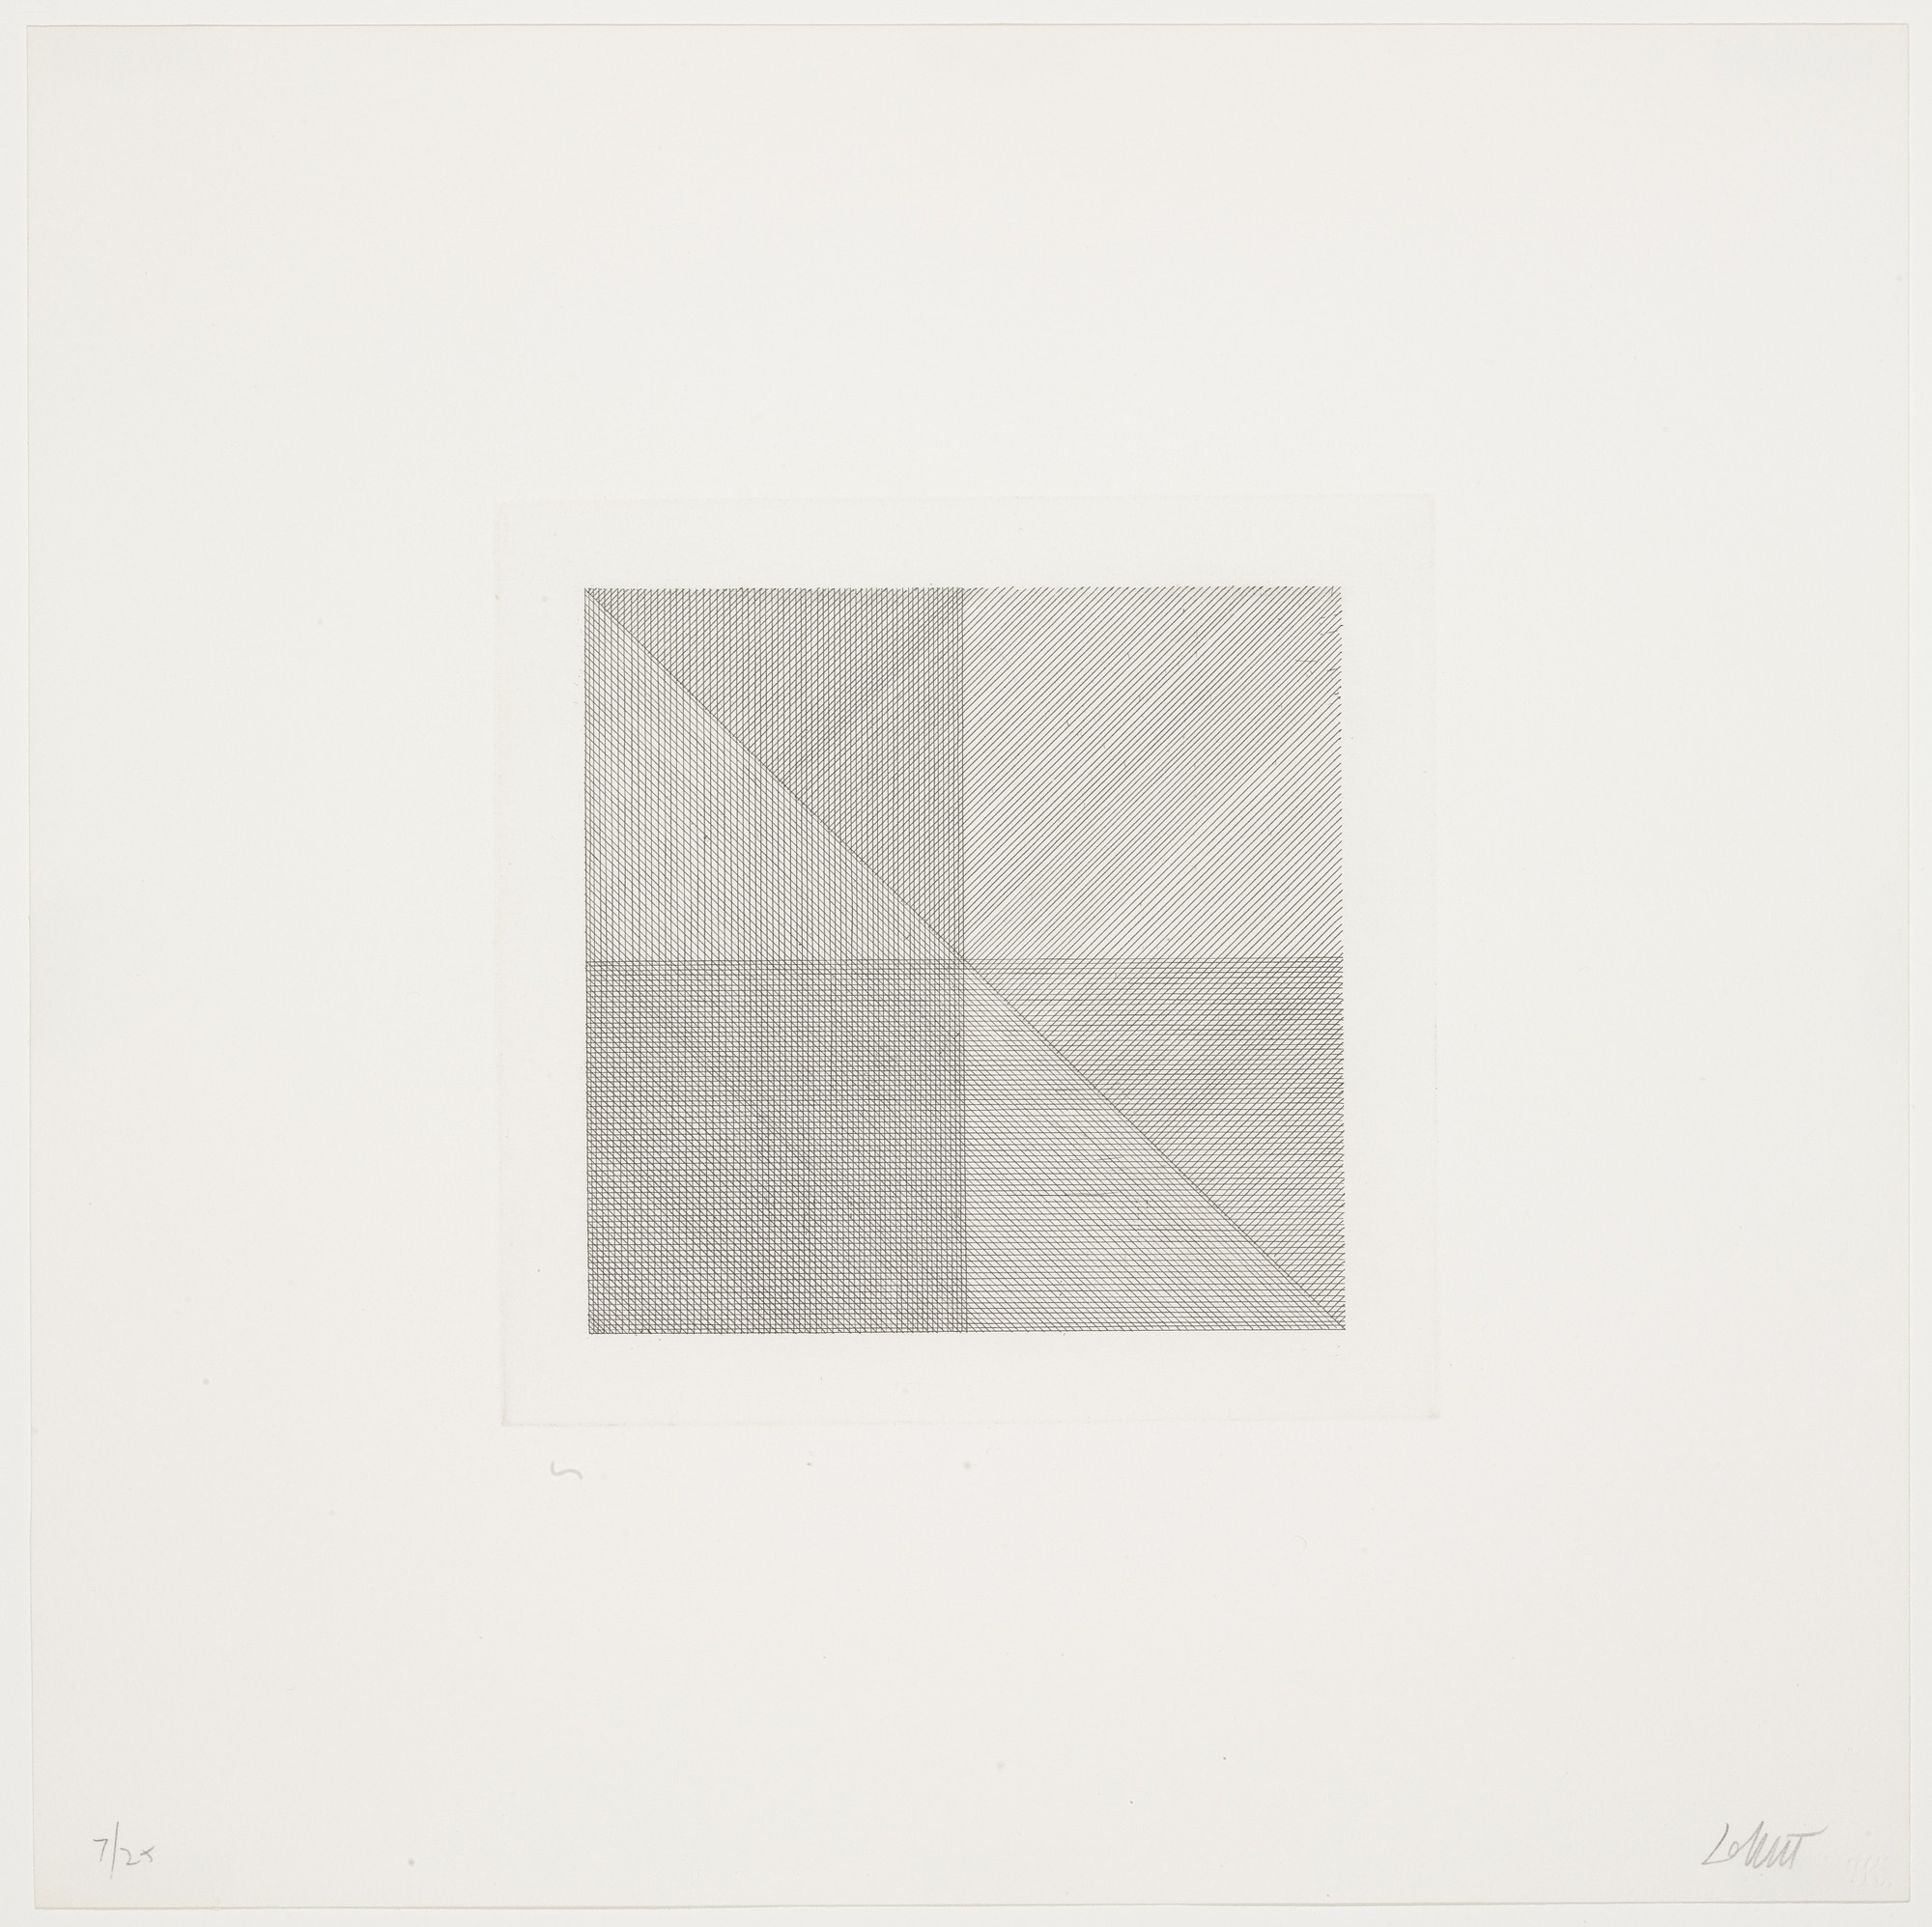 Sol LeWitt. Untitled from Squares with a Different Line Direction in Each Half Square. 1971